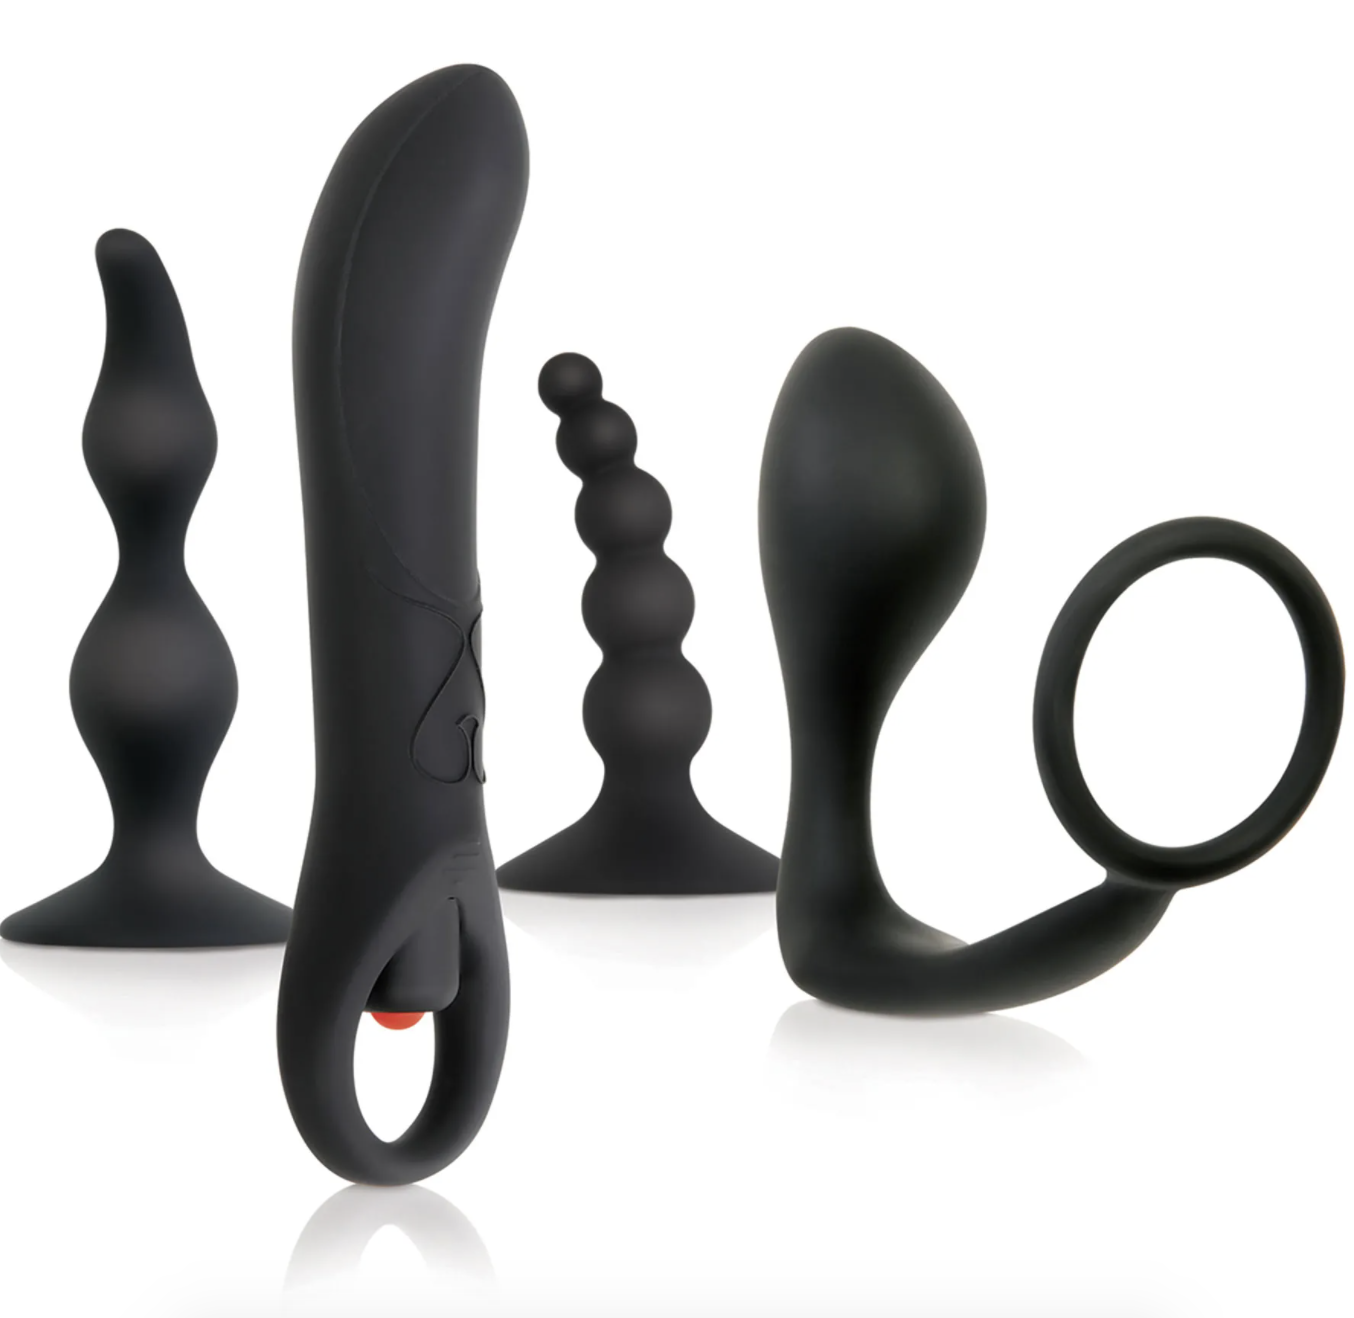 Into to Prostate kit with various ribbed anal plugs